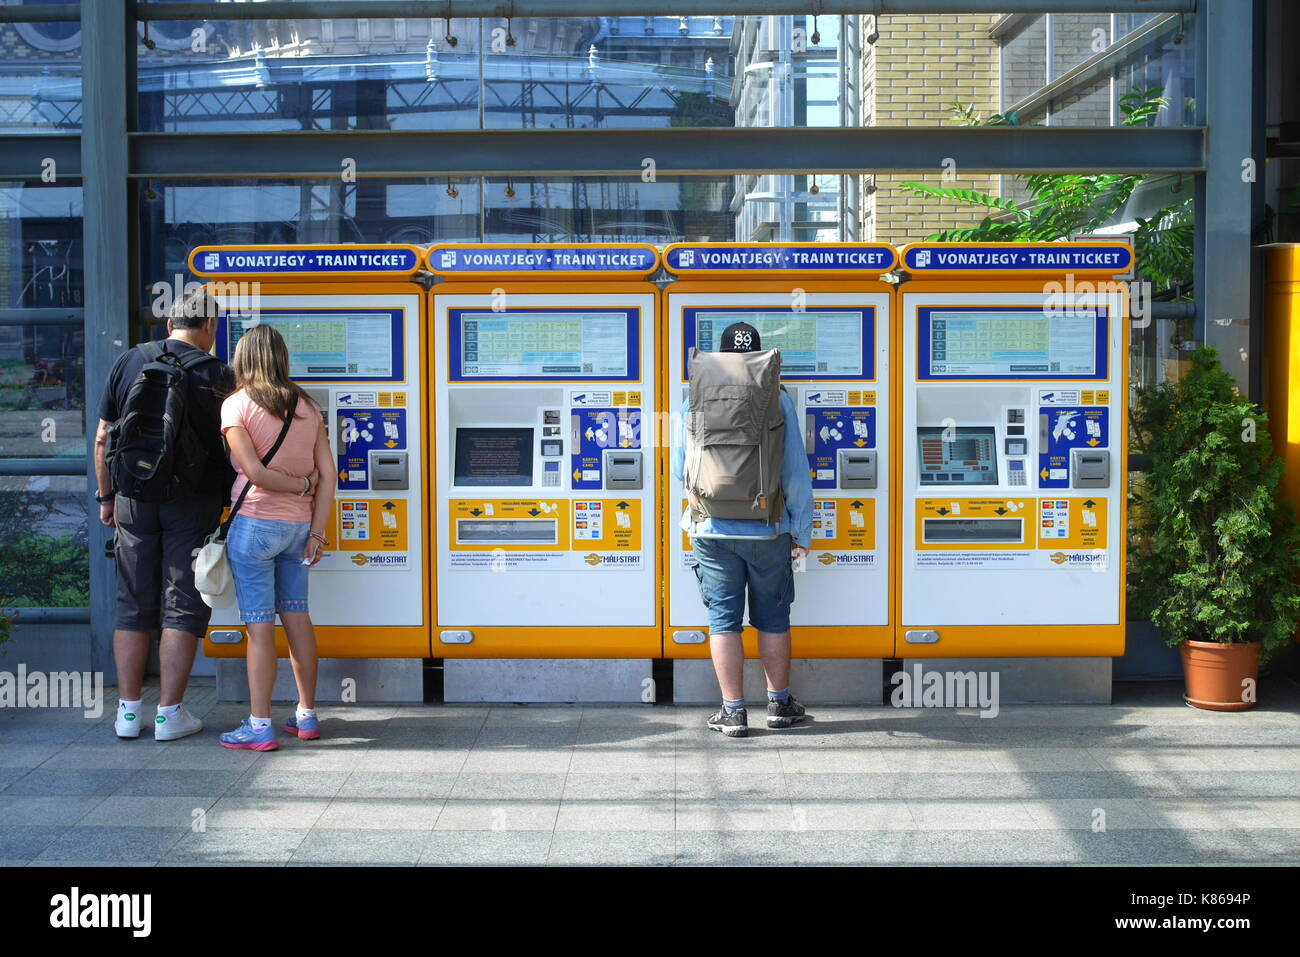 how to use a self service ticket machine